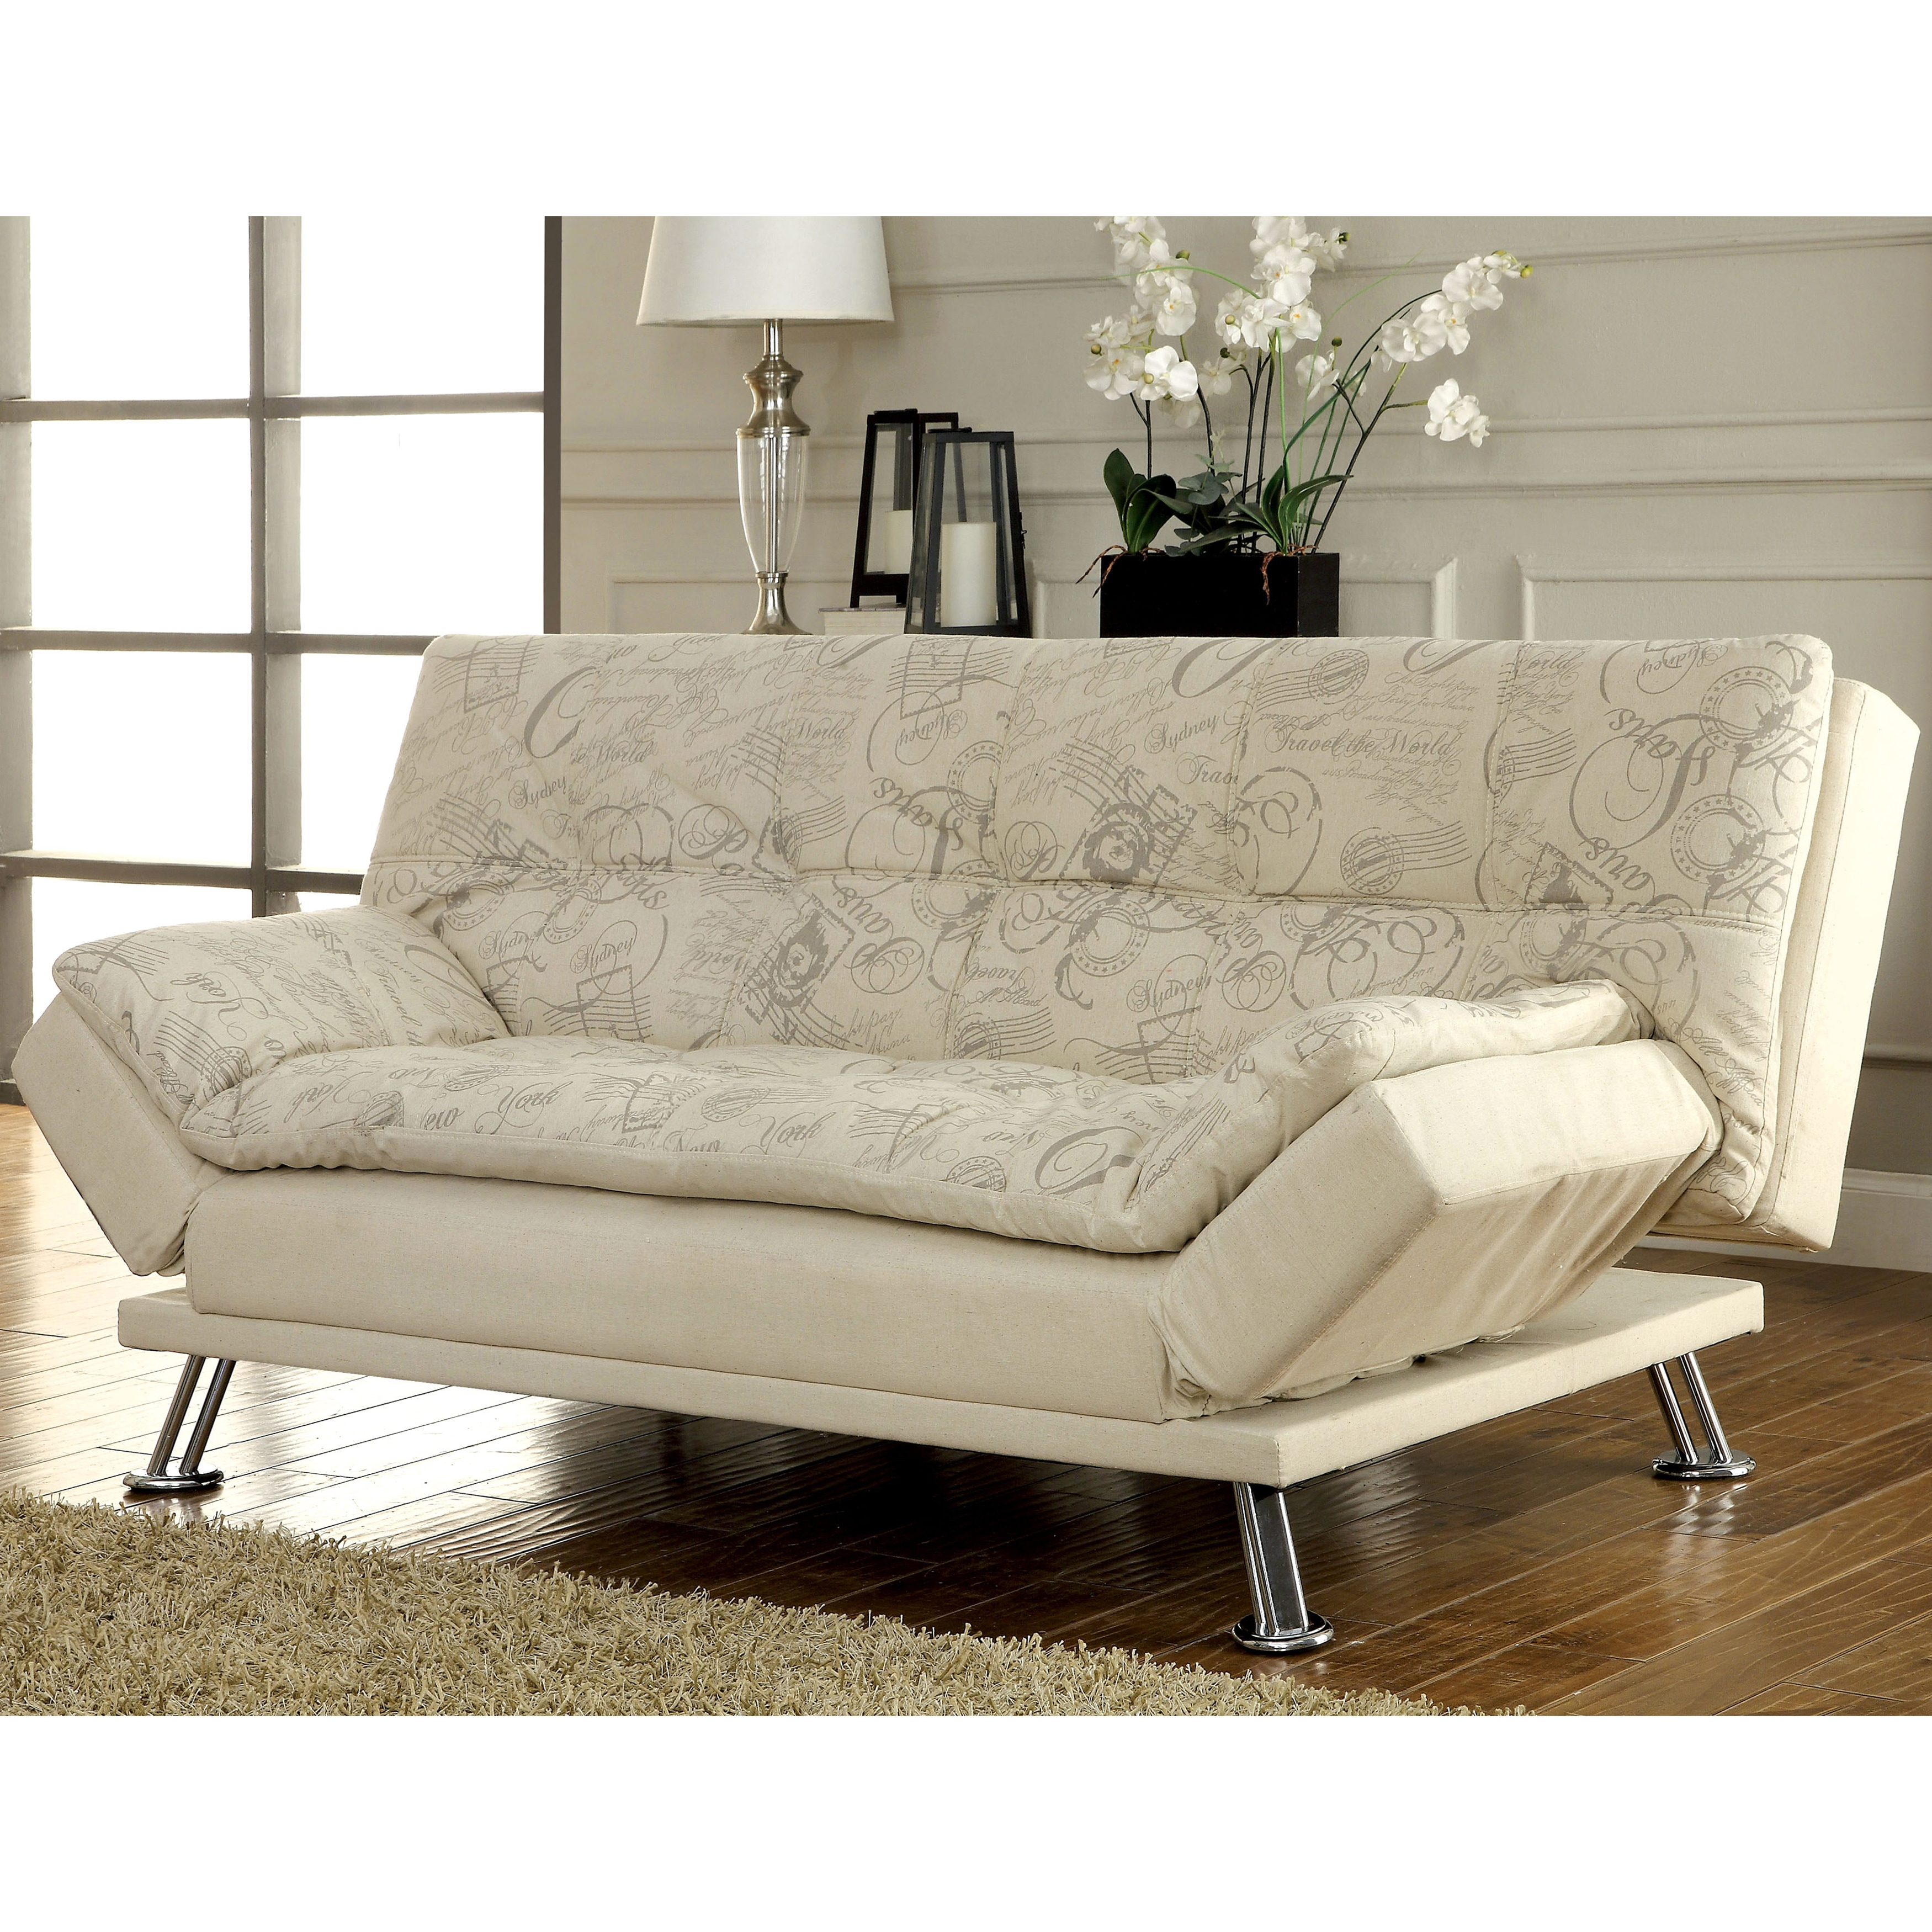 Furniture of America Aubreth Modern Futon Sofa Free Shipping